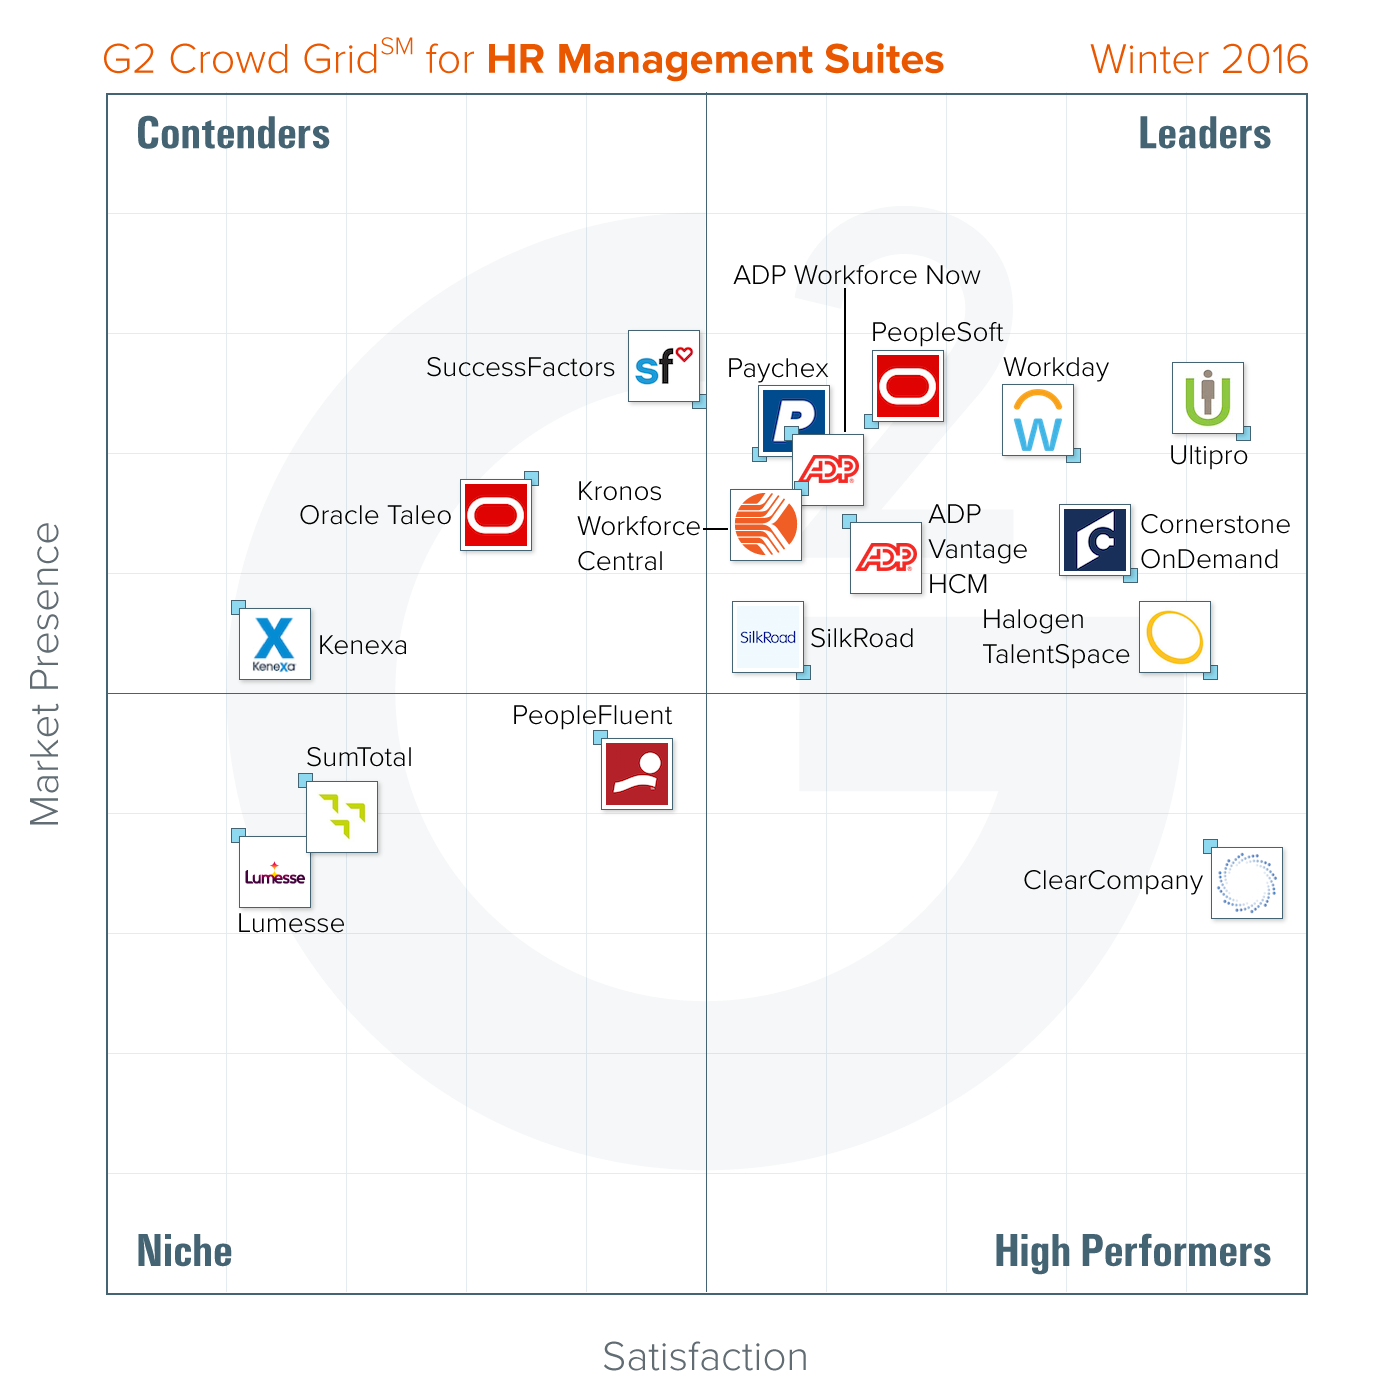 G2 Crowd Grid for HR Management Suites